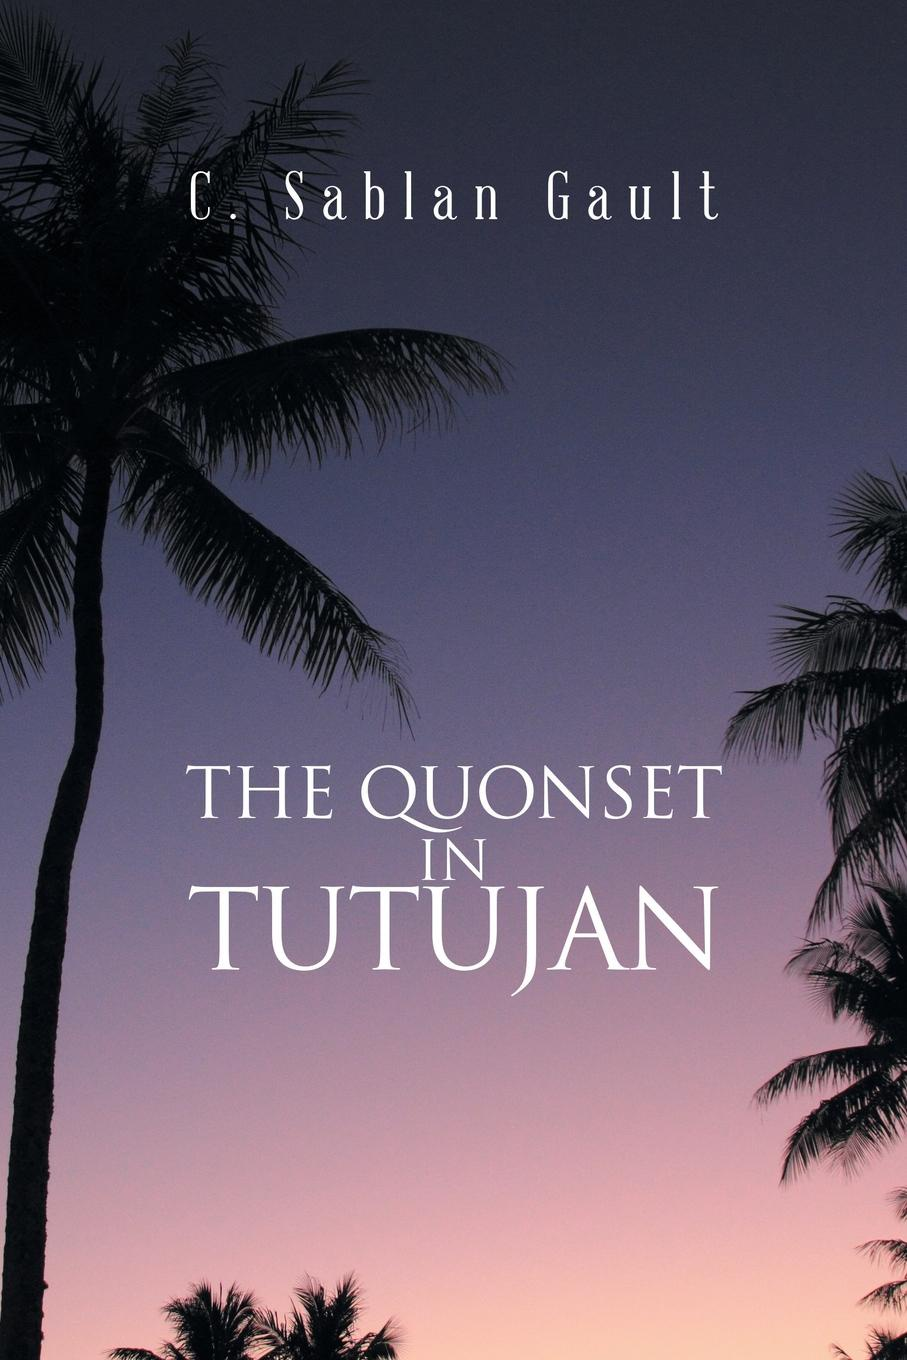 The Quonset in Tutujan